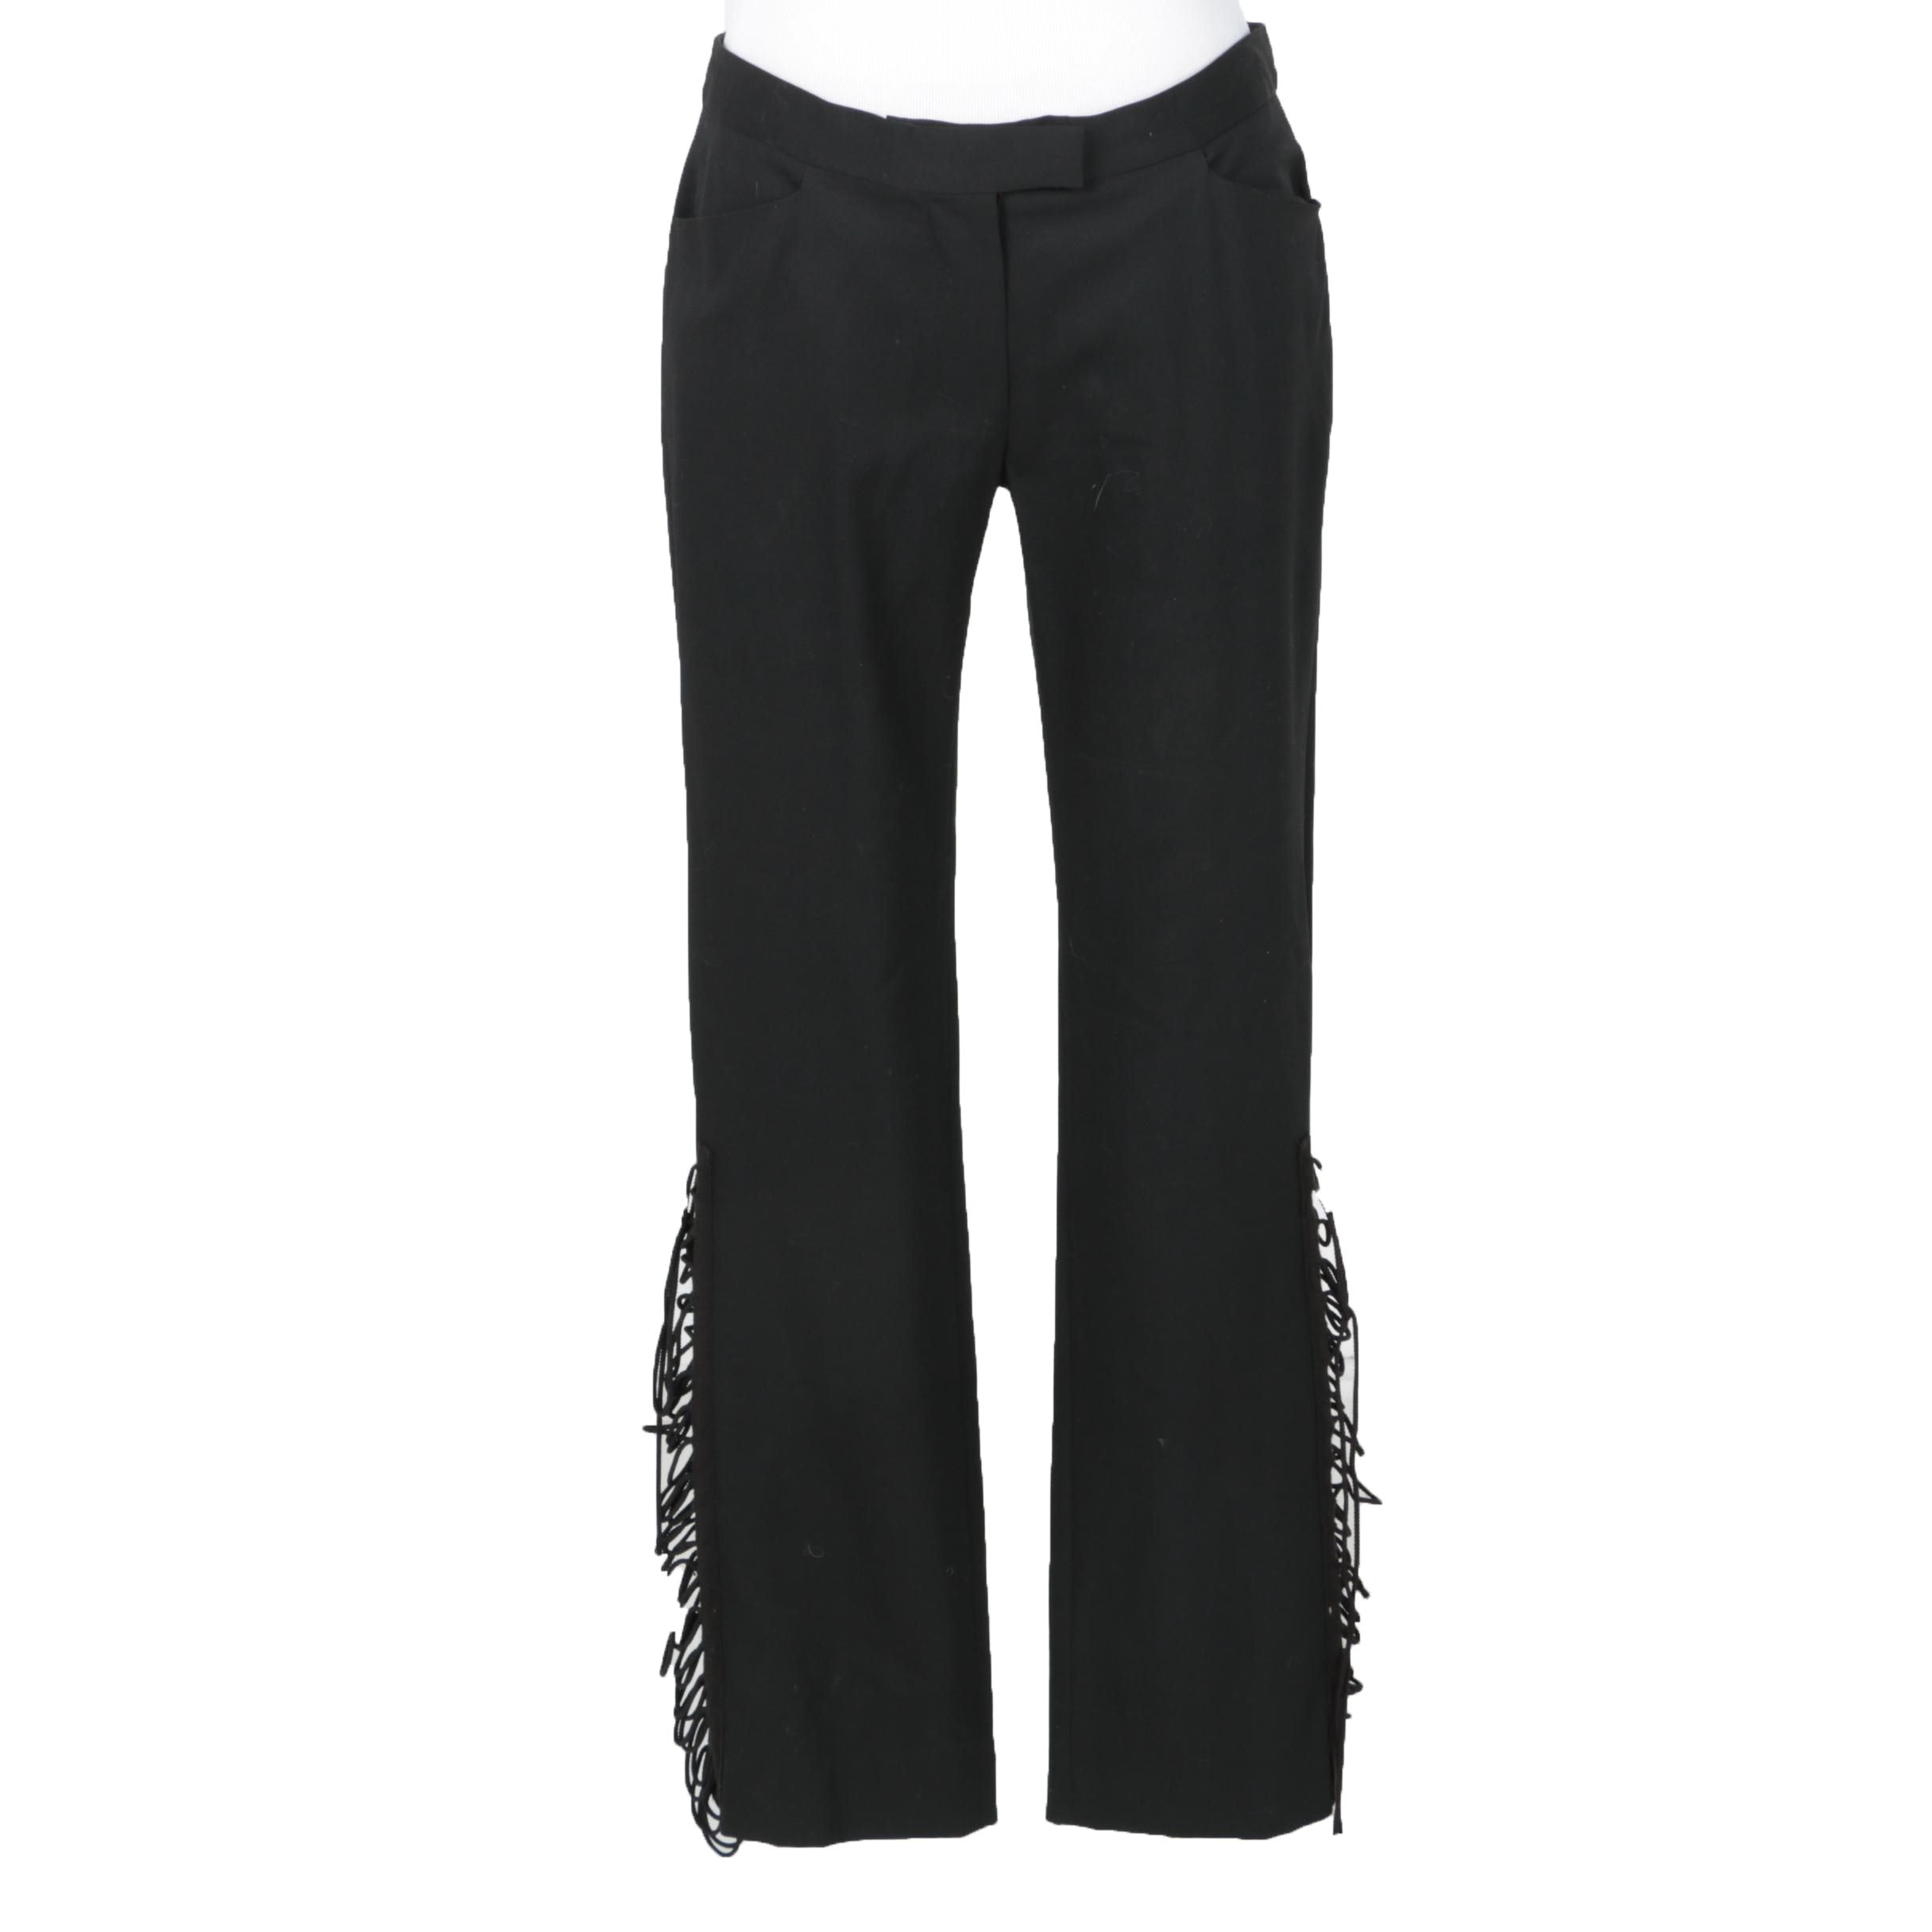 Women's Fredric Molenac Black Pants